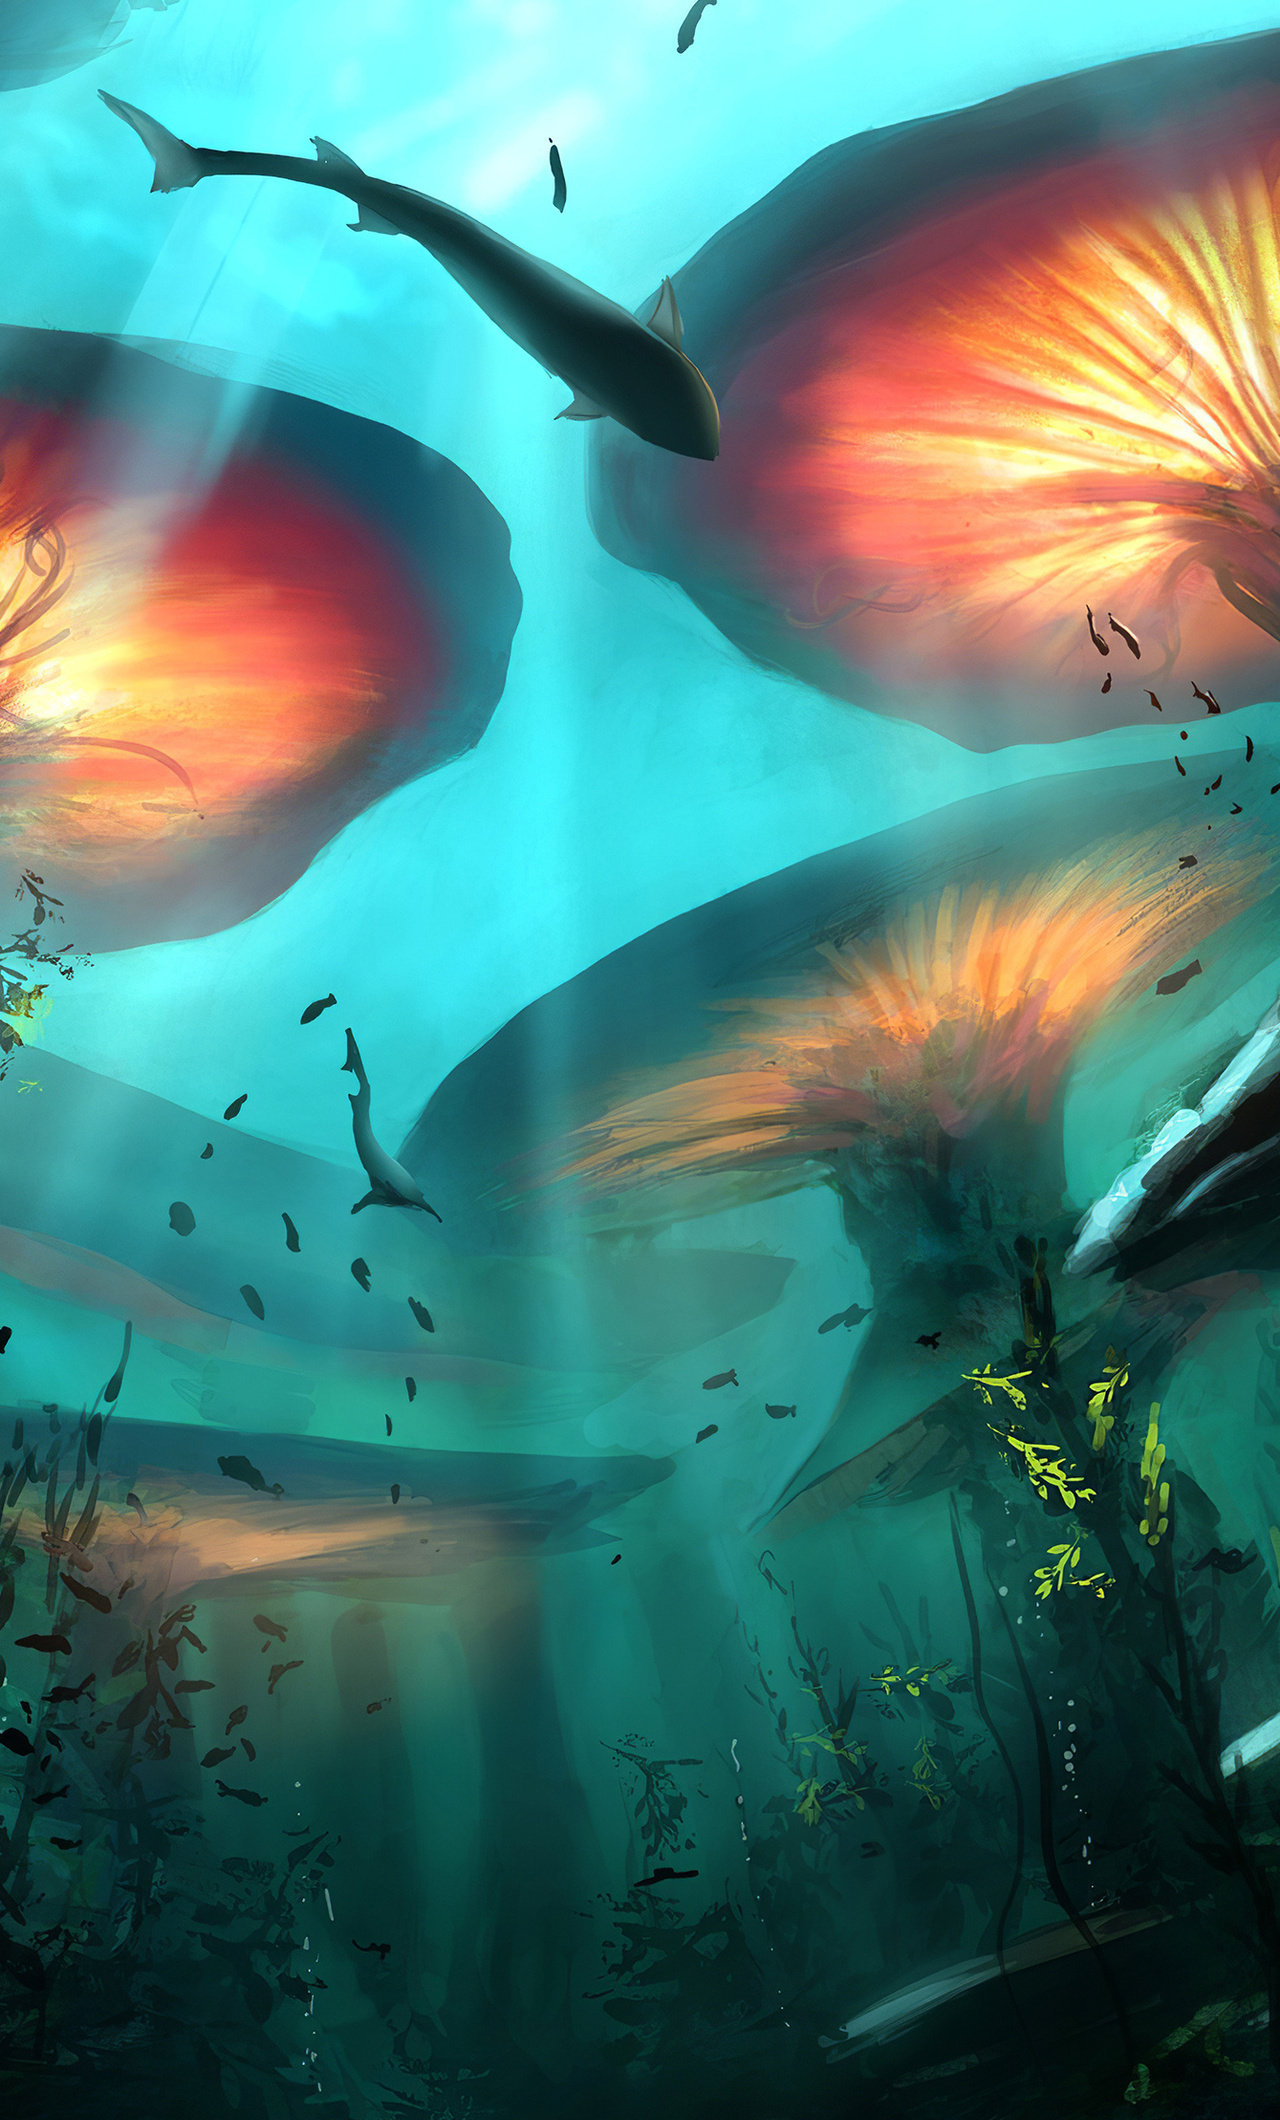 underwater-nature-digital-art-4k-9h.jpg